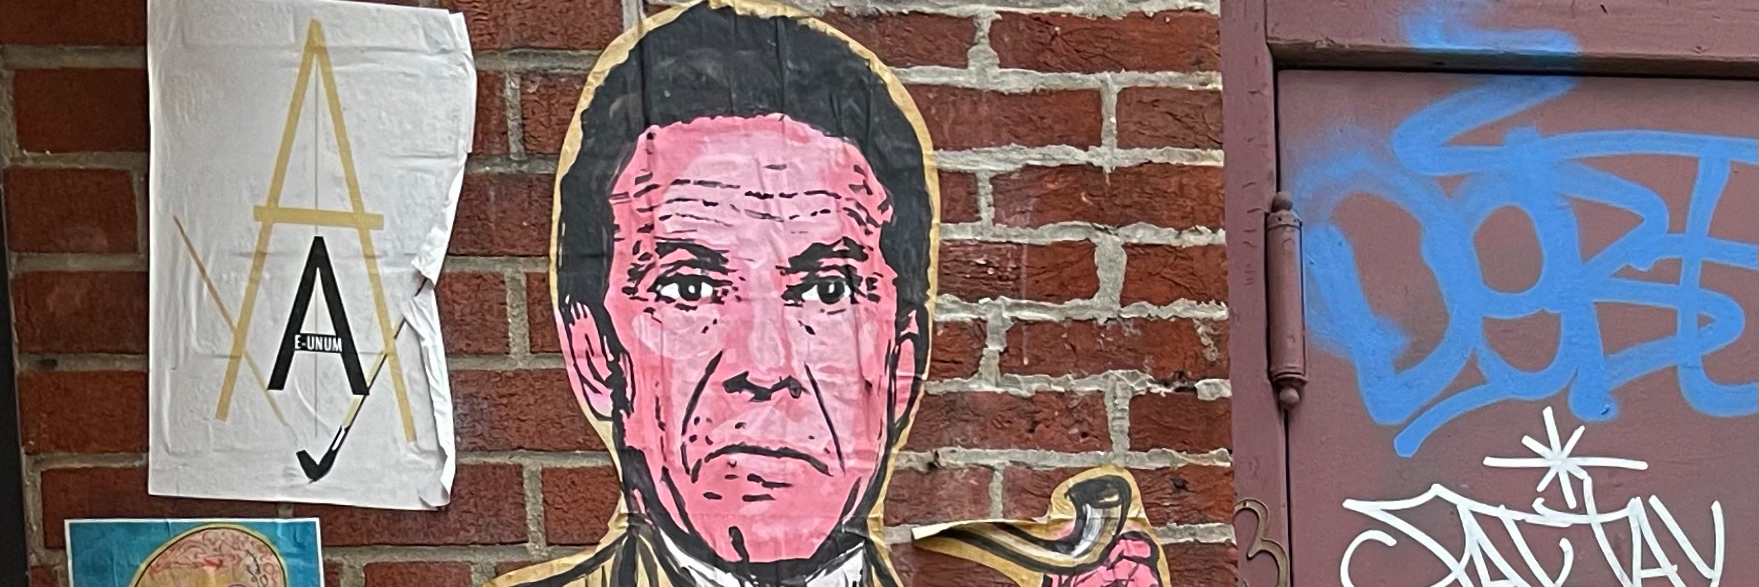 Governor Cuomo Resigns: Street Art May Have Seen it Coming